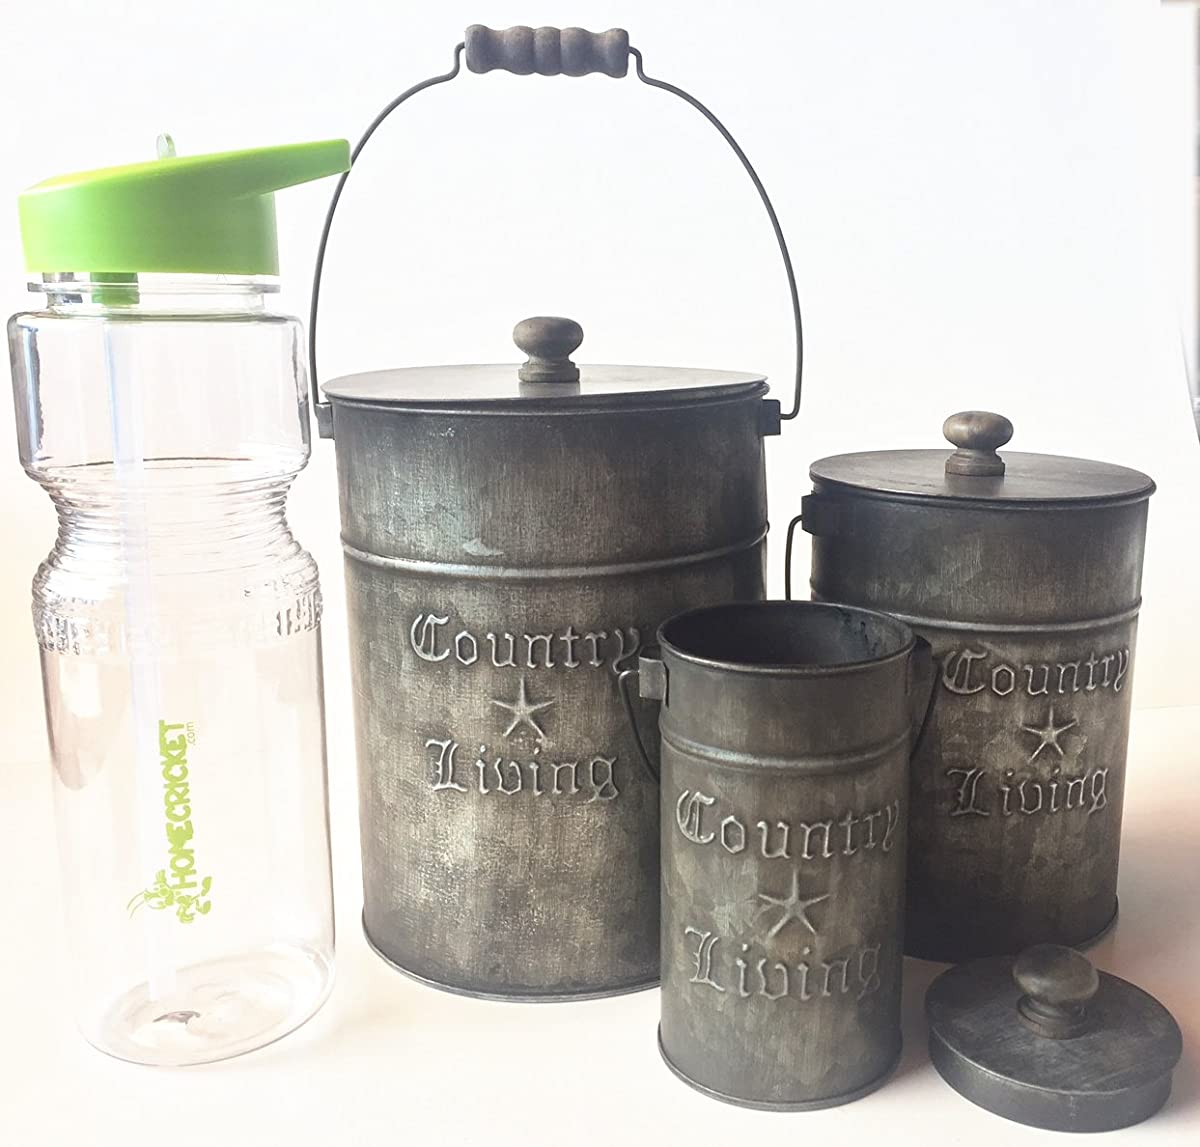 Gift Included- Set of 3 Rustic Country Living Canisters Home Decor Accents + FREE Bonus 23 oz Water Bottle byHomecricket